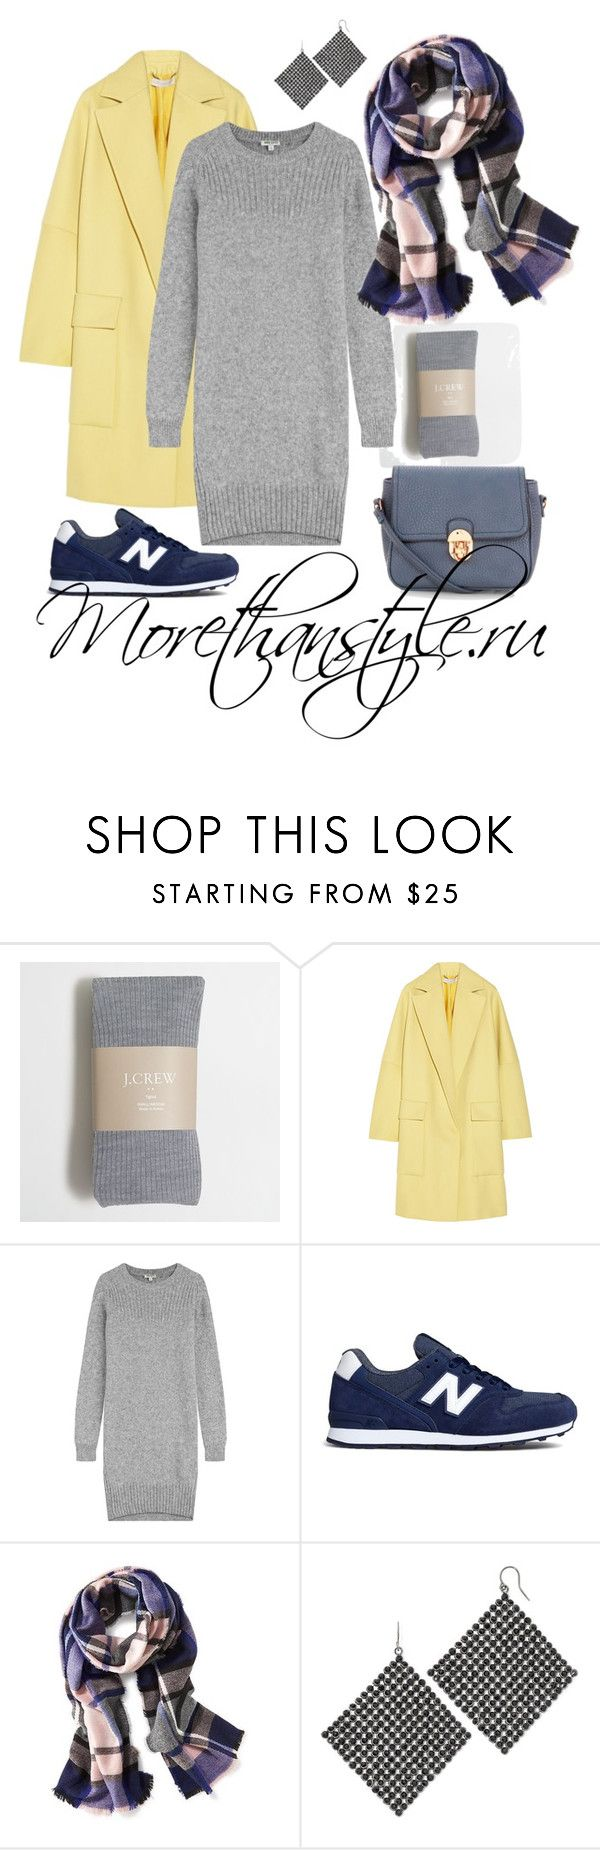 """""""Casual outfit"""" by smileggal on Polyvore featuring мода, J.Crew, STELLA McCARTNEY, Kenzo, New Balance, Old Navy и Vieste Rosa"""